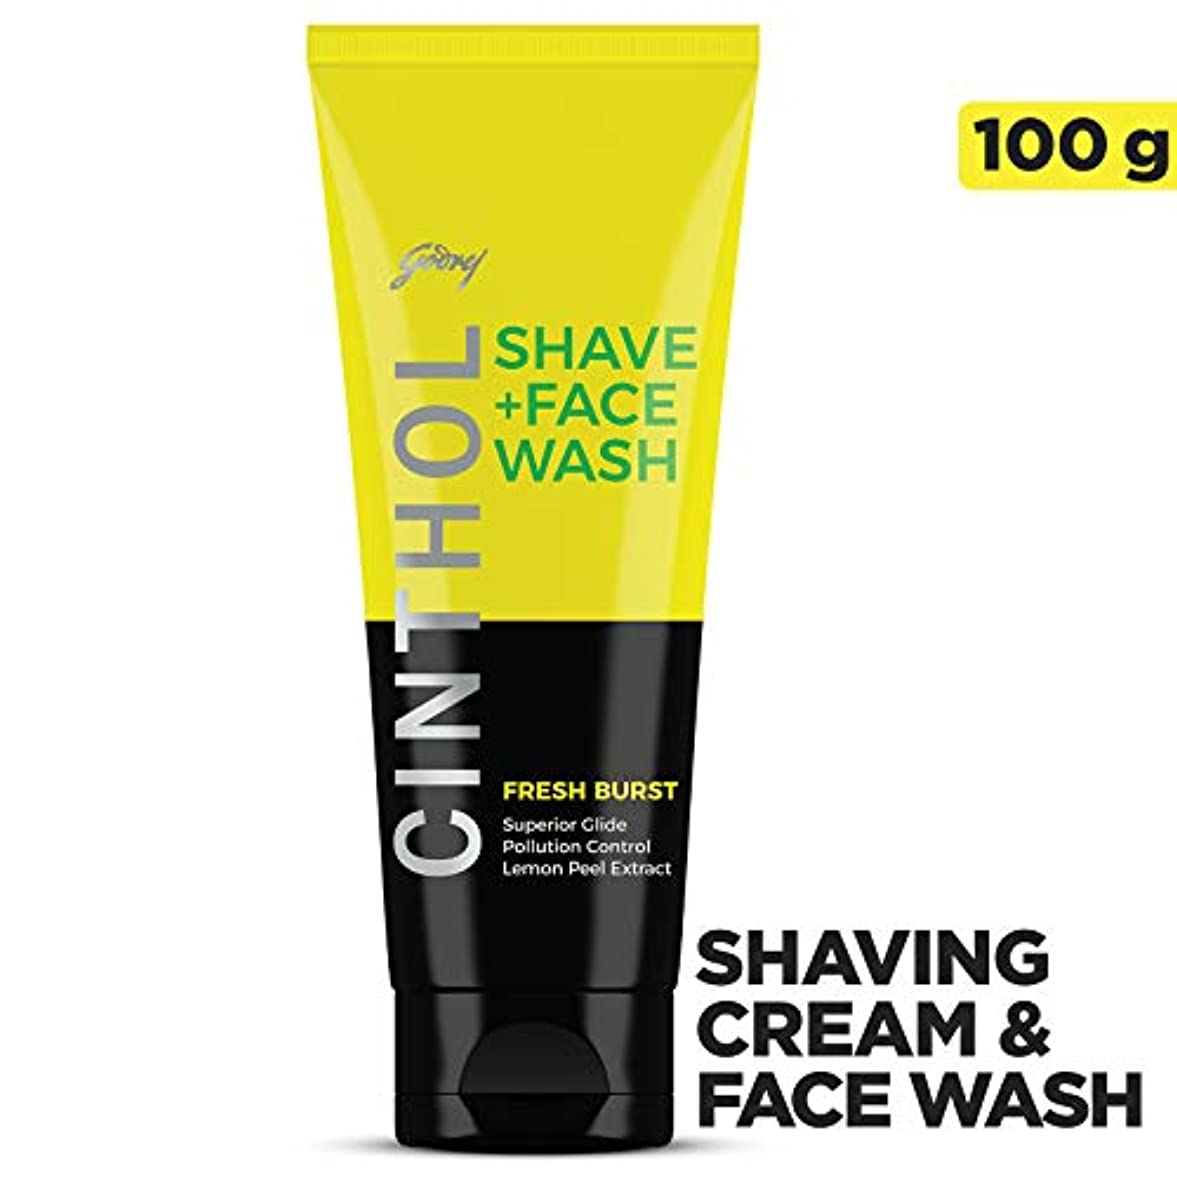 Cinthol Fresh Burst Shaving + Face Wash, 100g